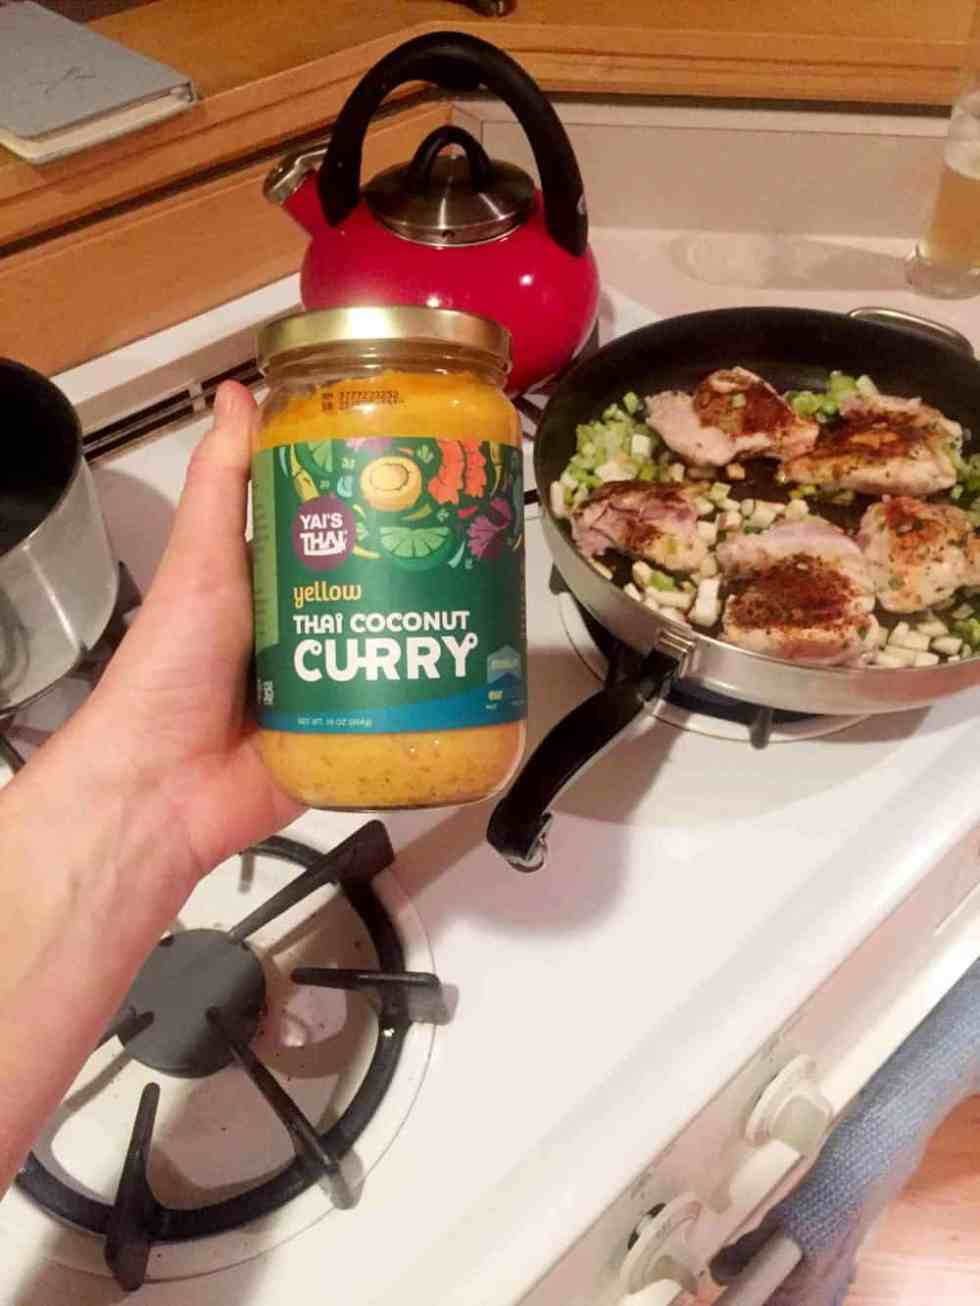 Delicious chicken thai curry made with yai thai curry sauce, radishes, turnips and celery